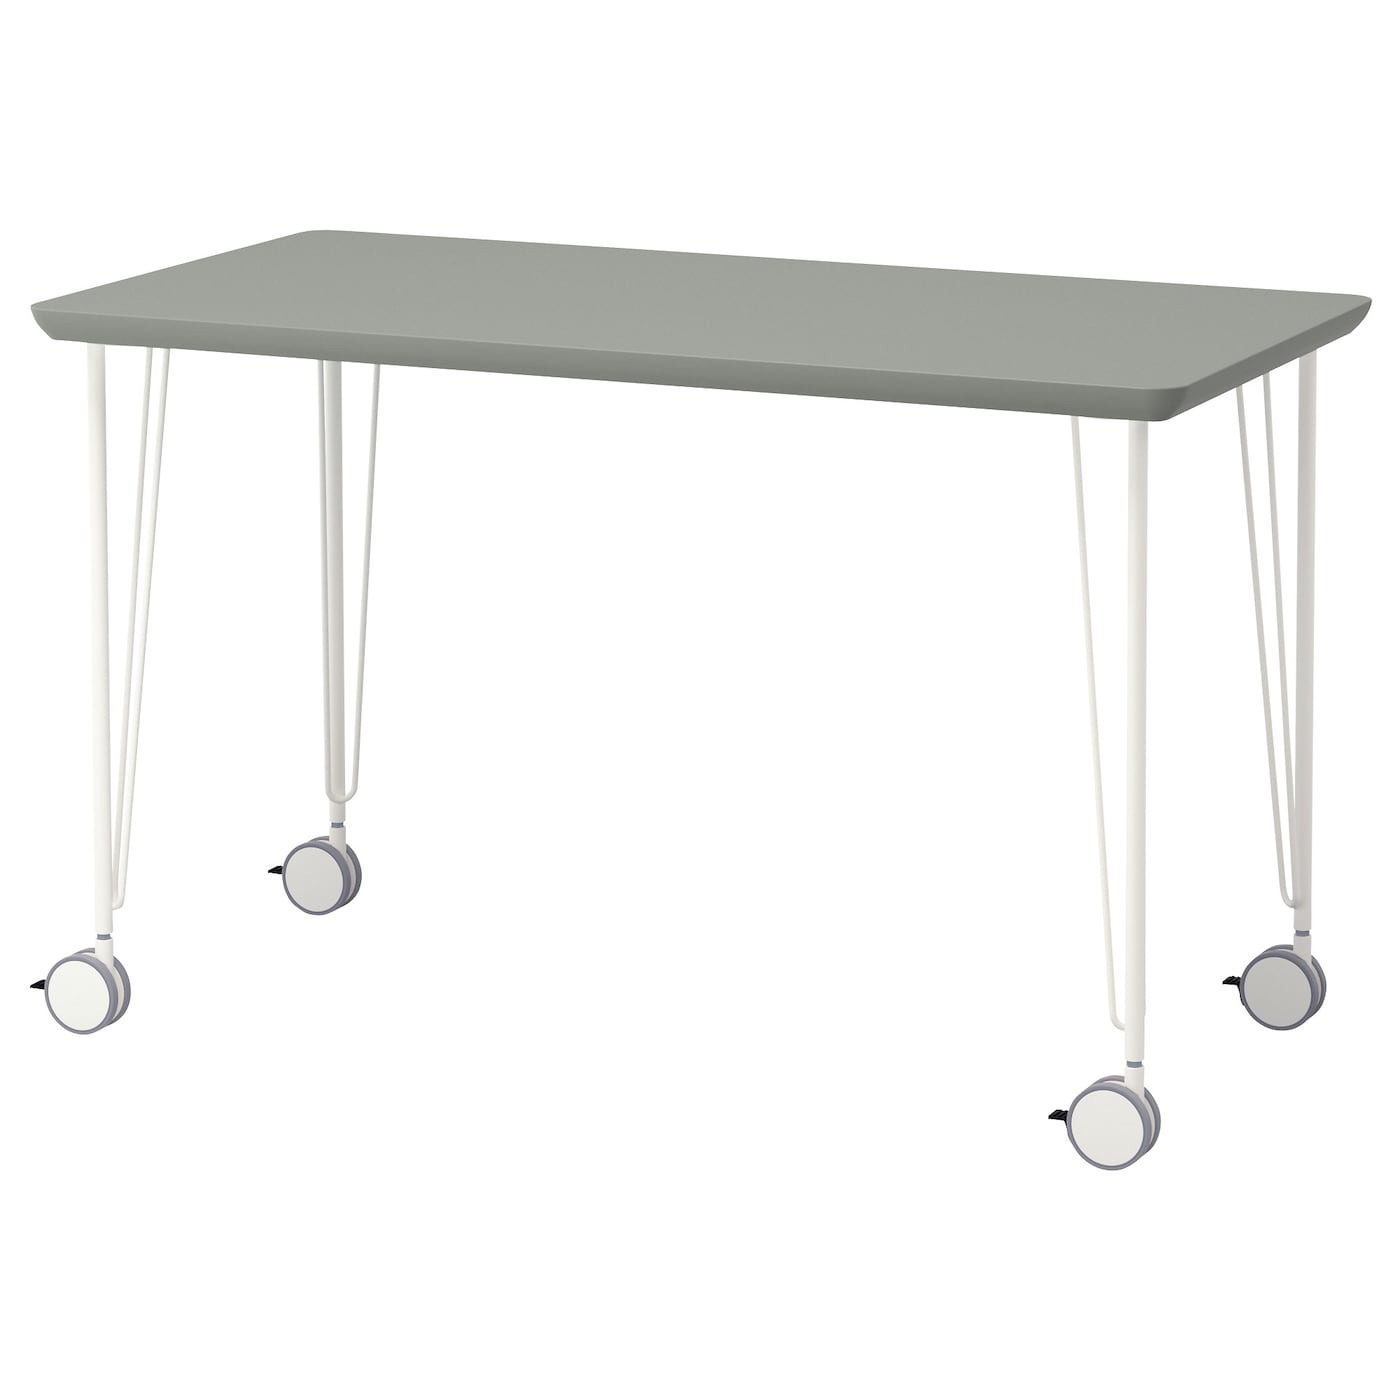 IKEA KRILLE/ÅMLIDEN table